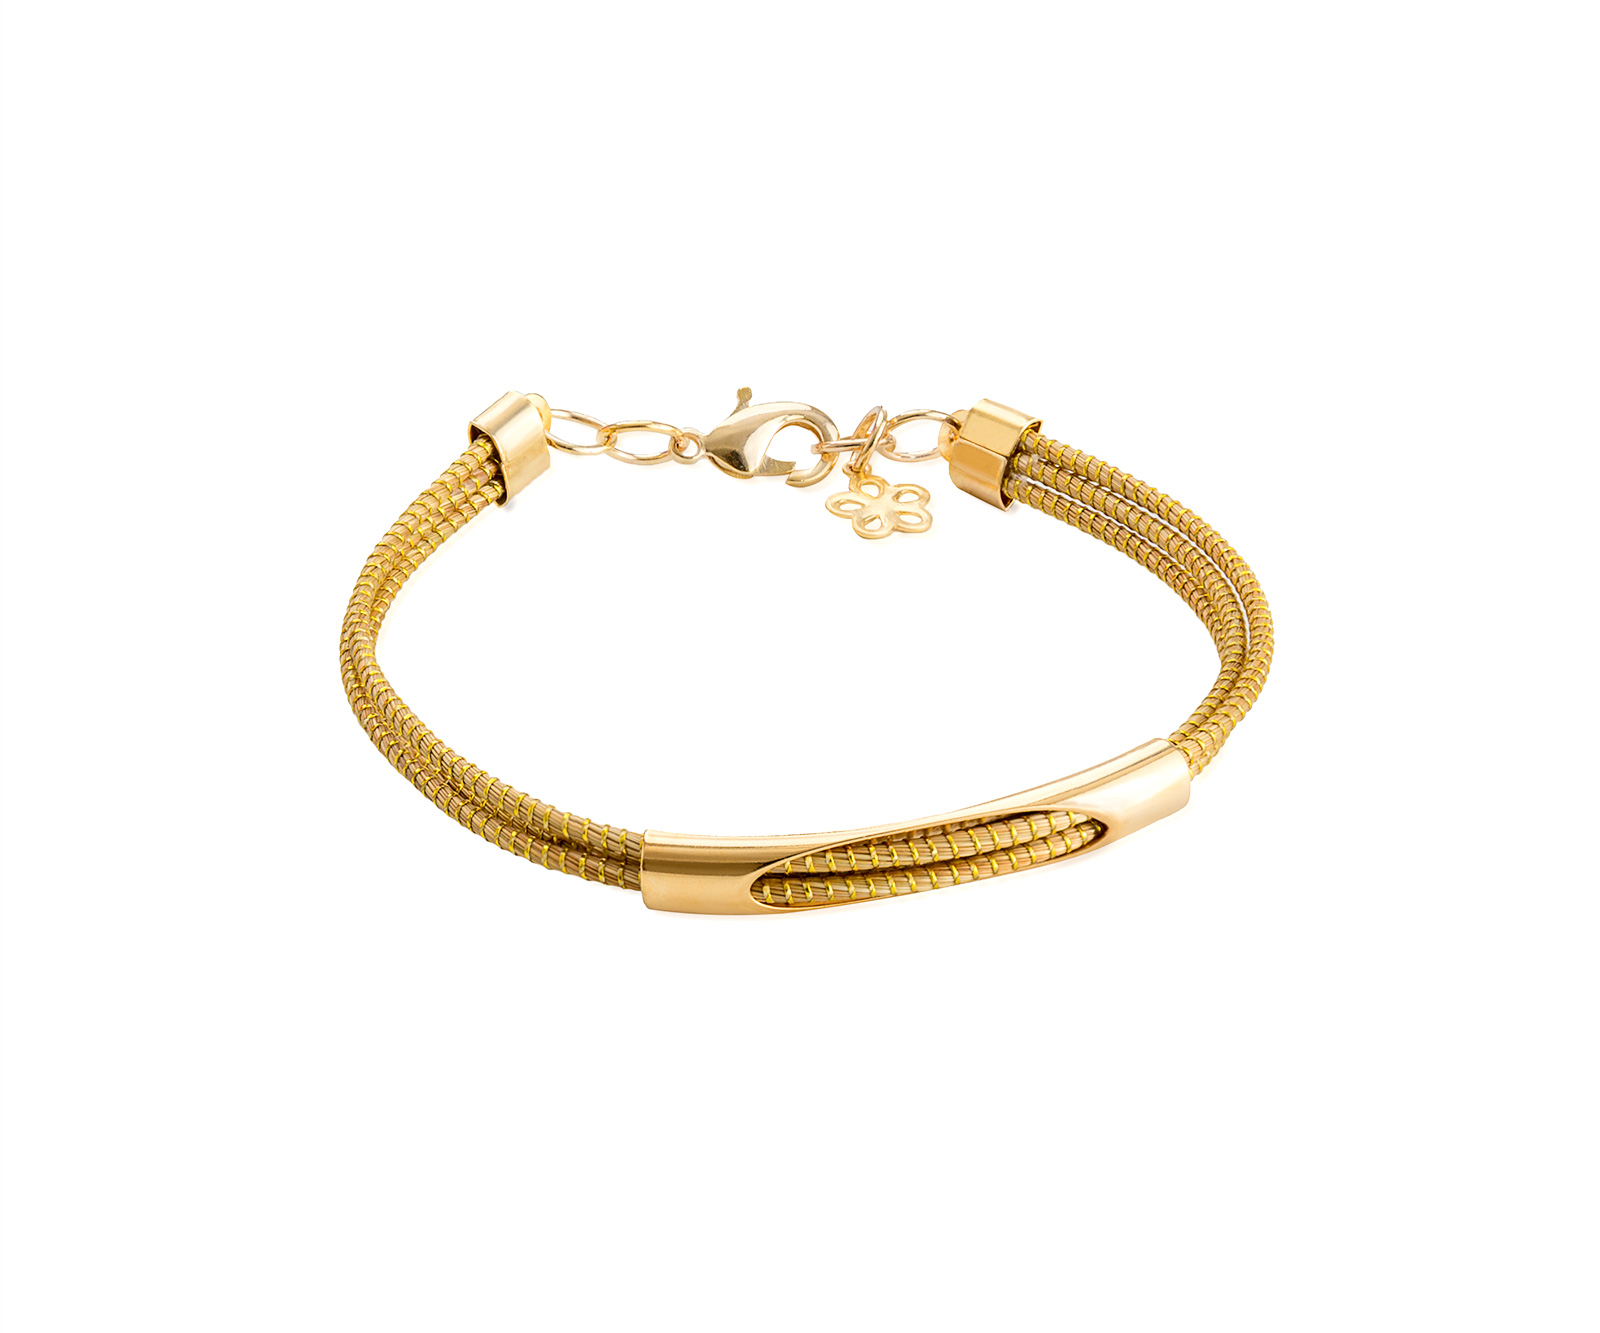 mens bhp ebay golden bracelet gold